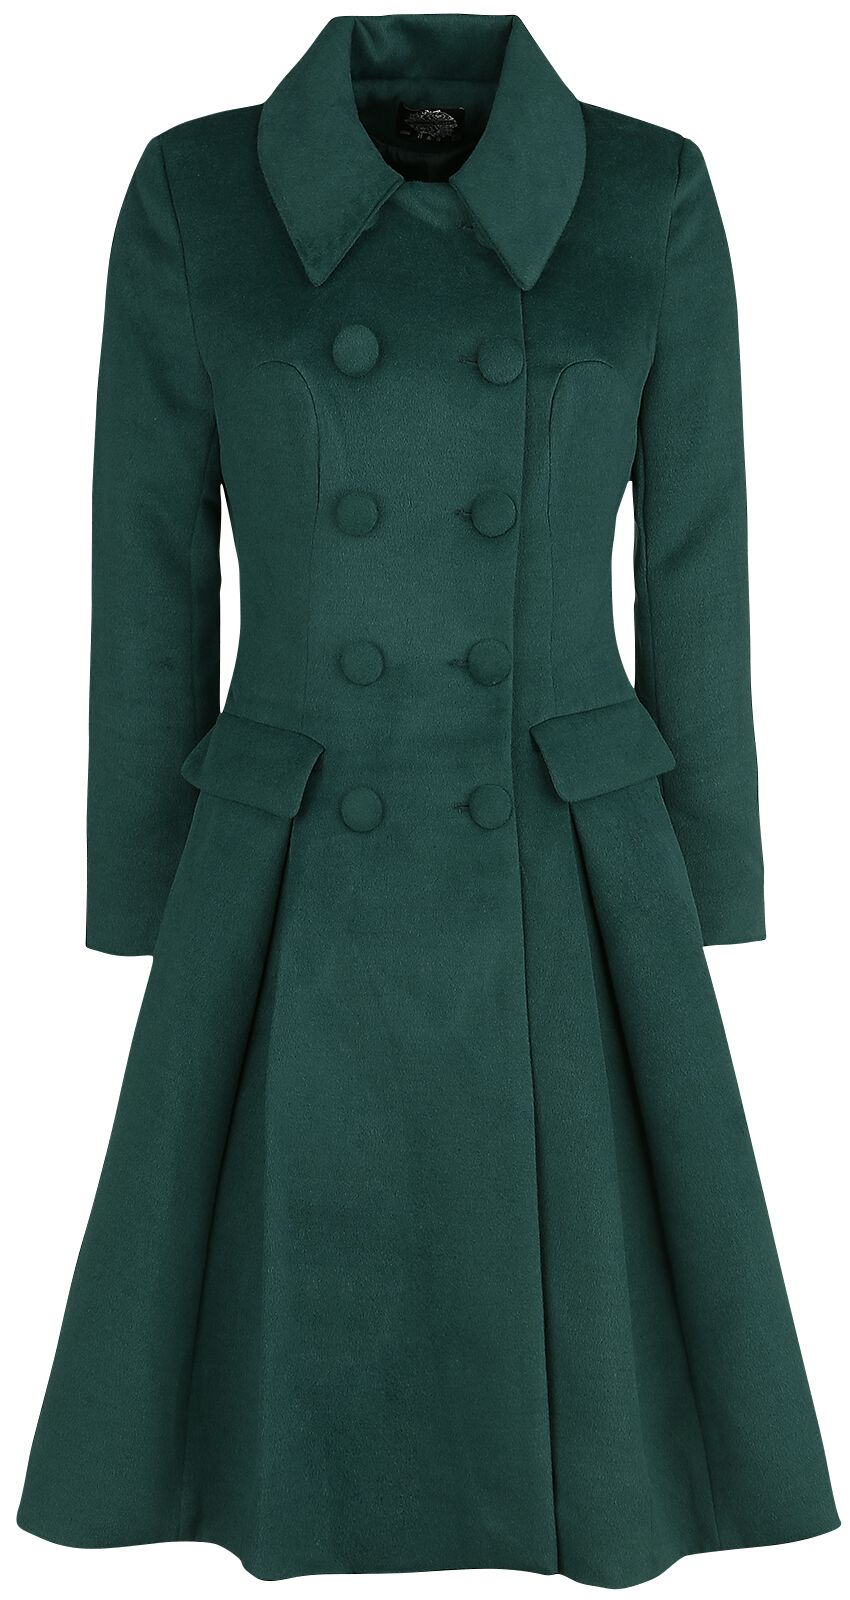 Jacken - H R London Evelyn Swing Coat Mantel grün  - Onlineshop EMP